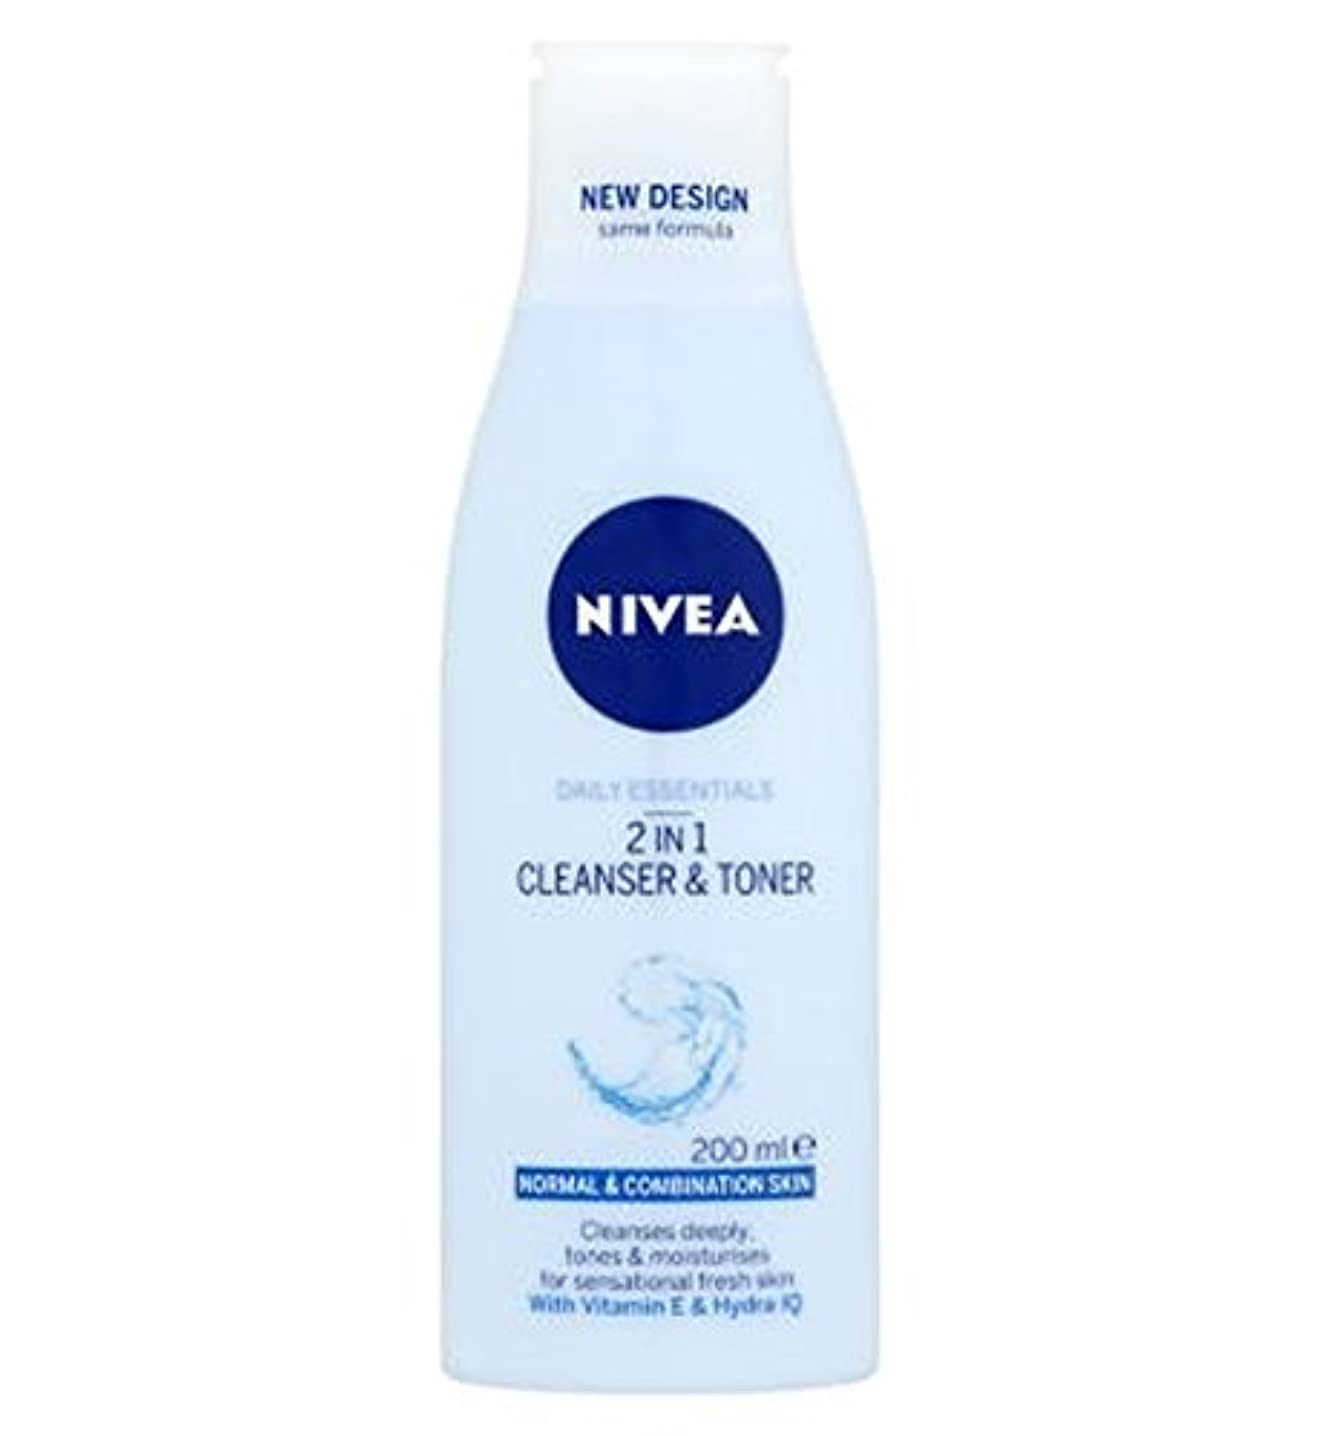 Nivea Daily Essentials 2 in 1 Cleanser and Toner 200ml - ニベア生活必需品2 1クレンザーとトナー200ミリリットルで (Nivea) [並行輸入品]